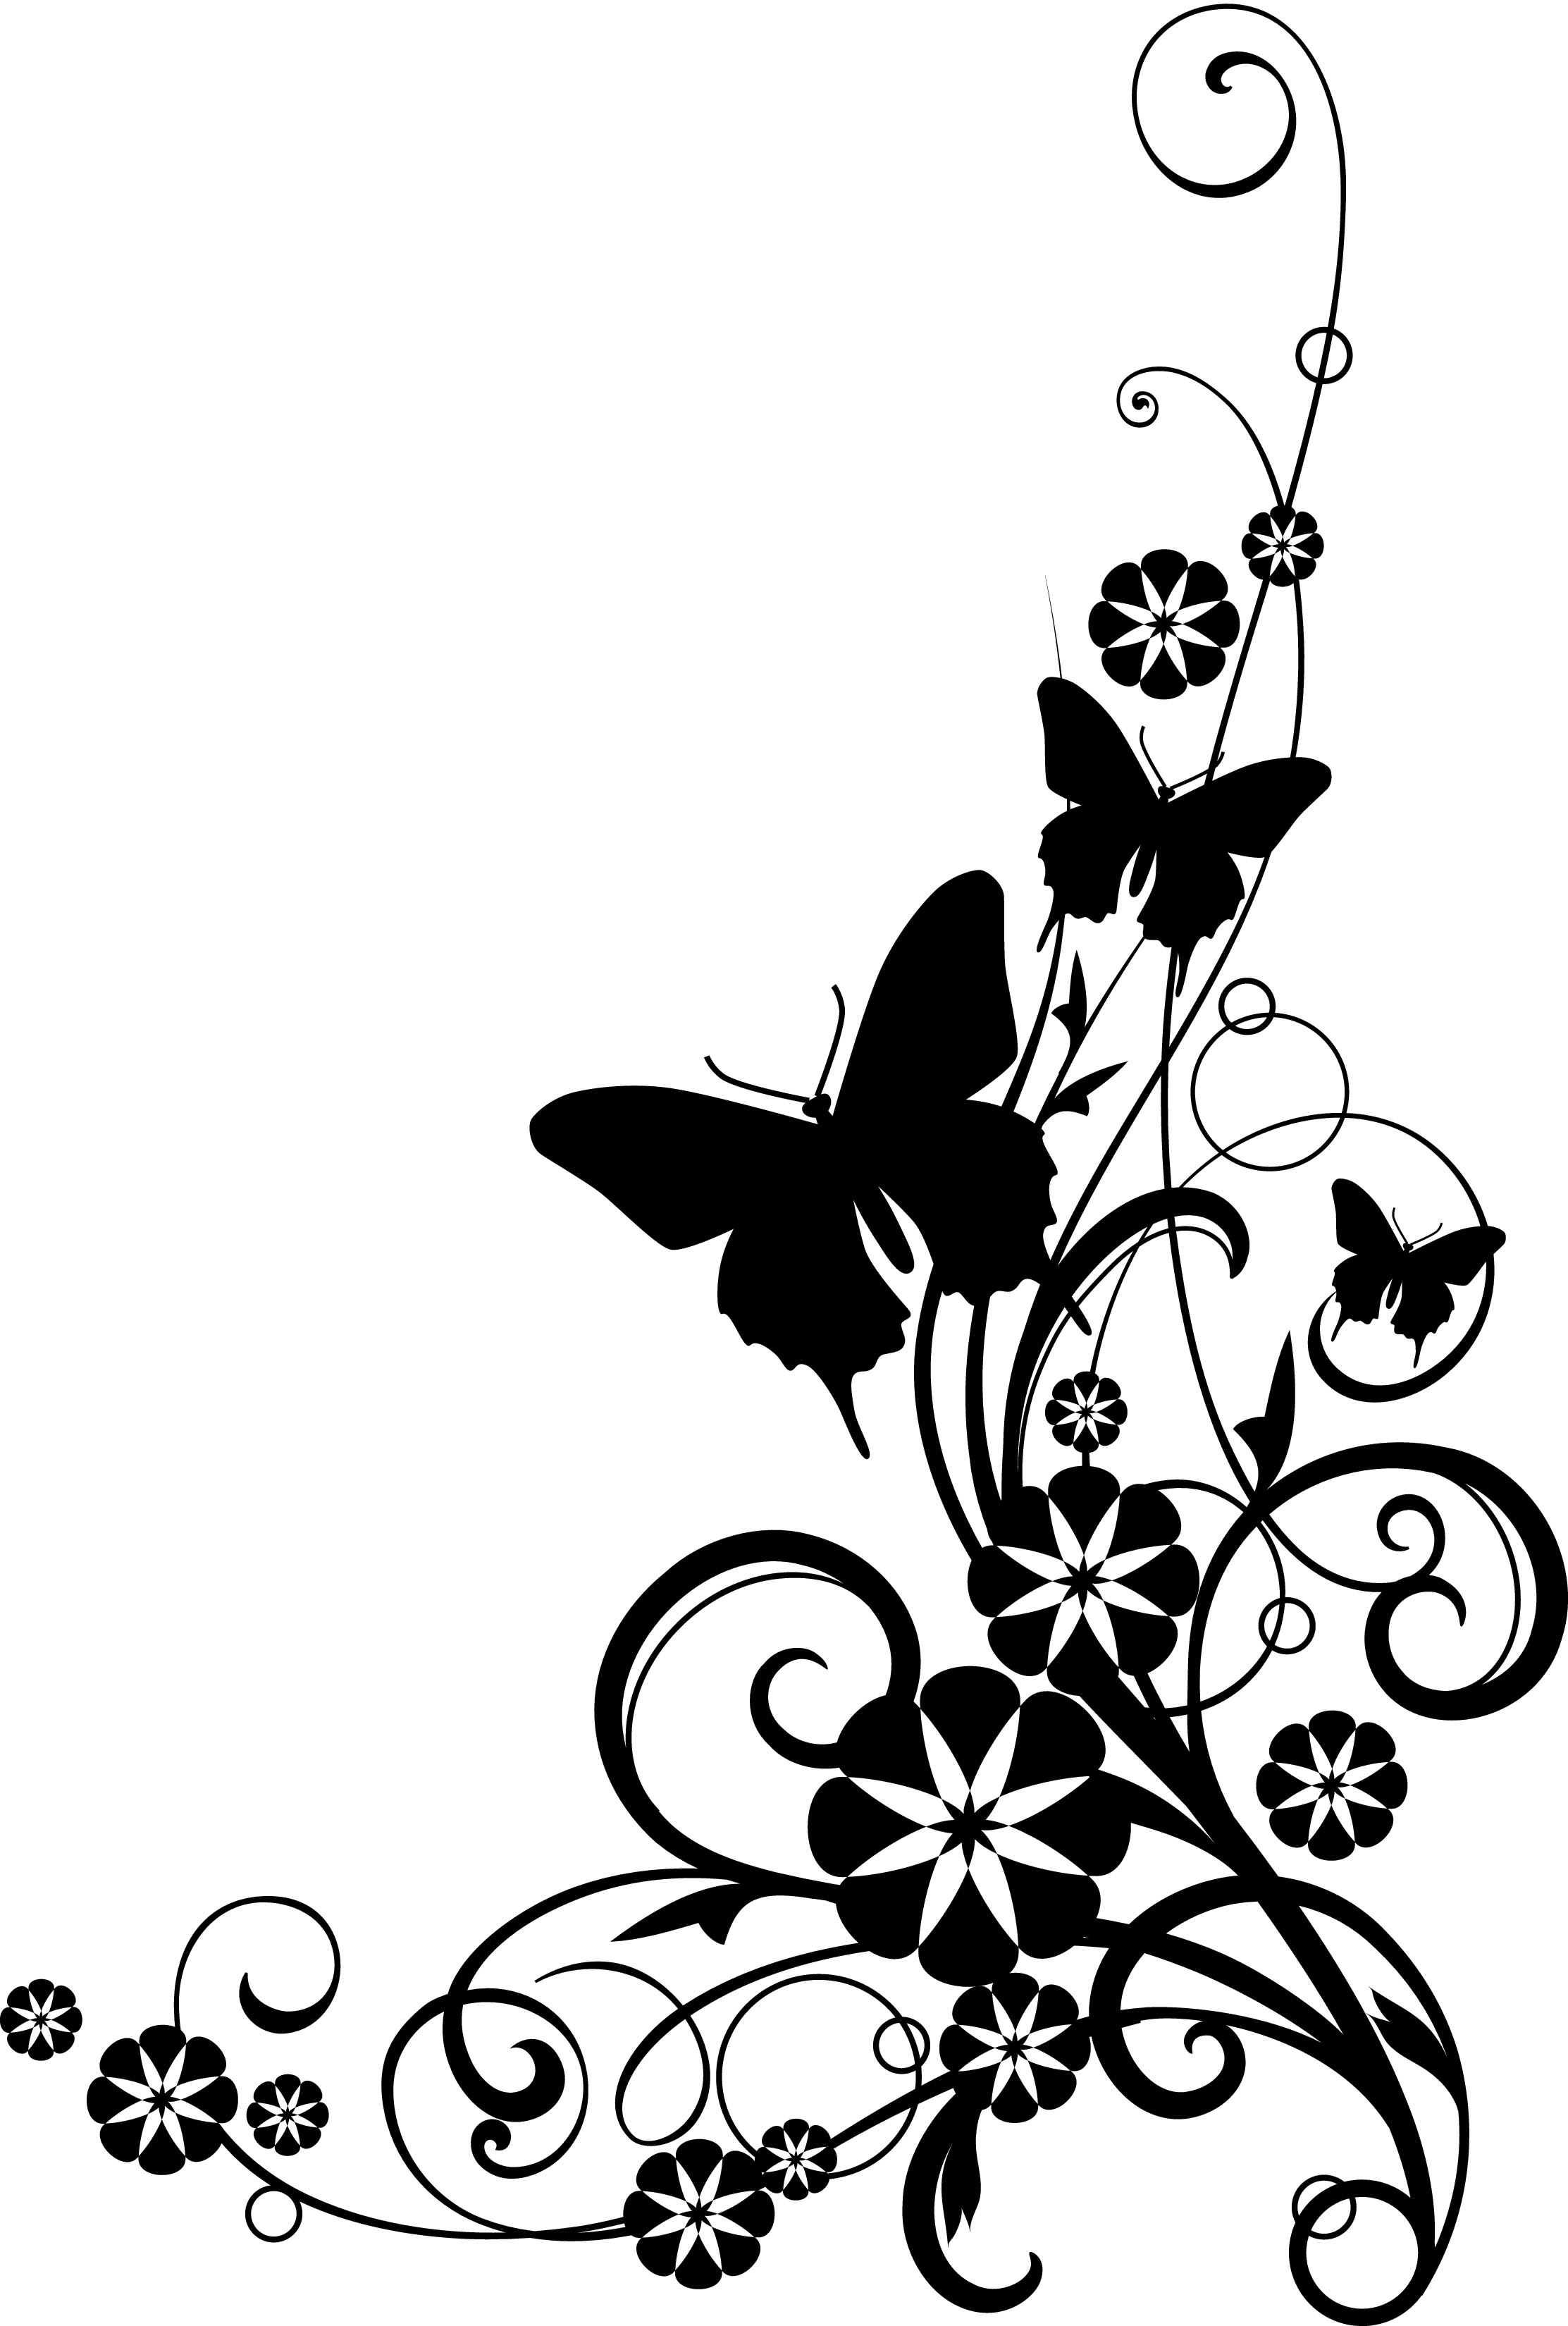 October clipart black and white. Border clip art library